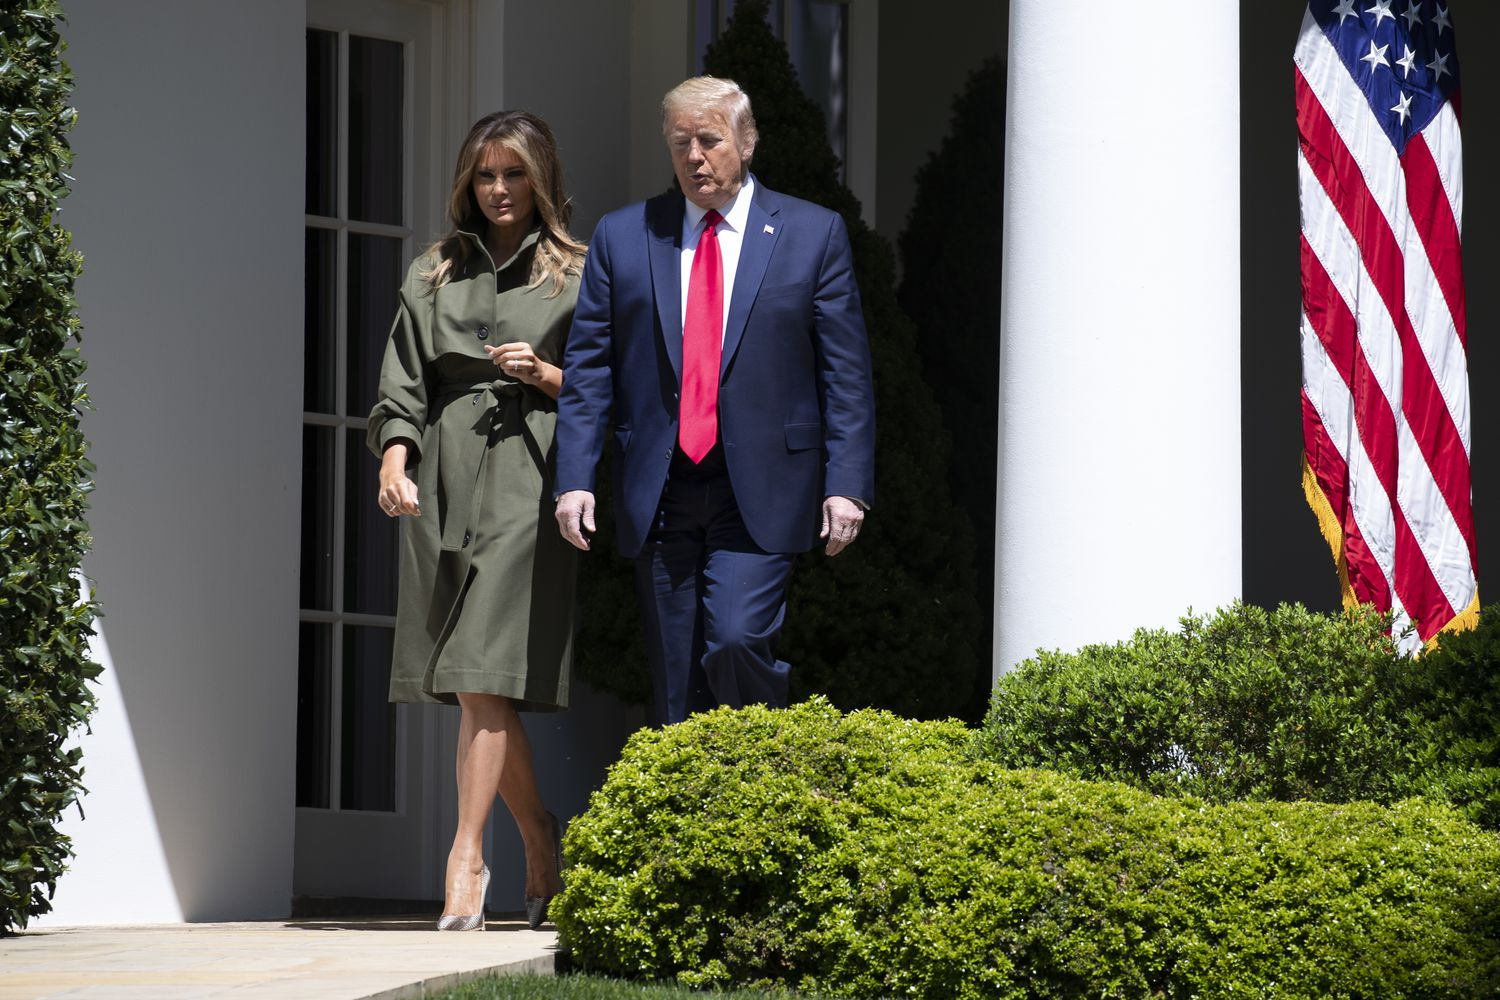 Le couple Trump, à la Maison Blanche.